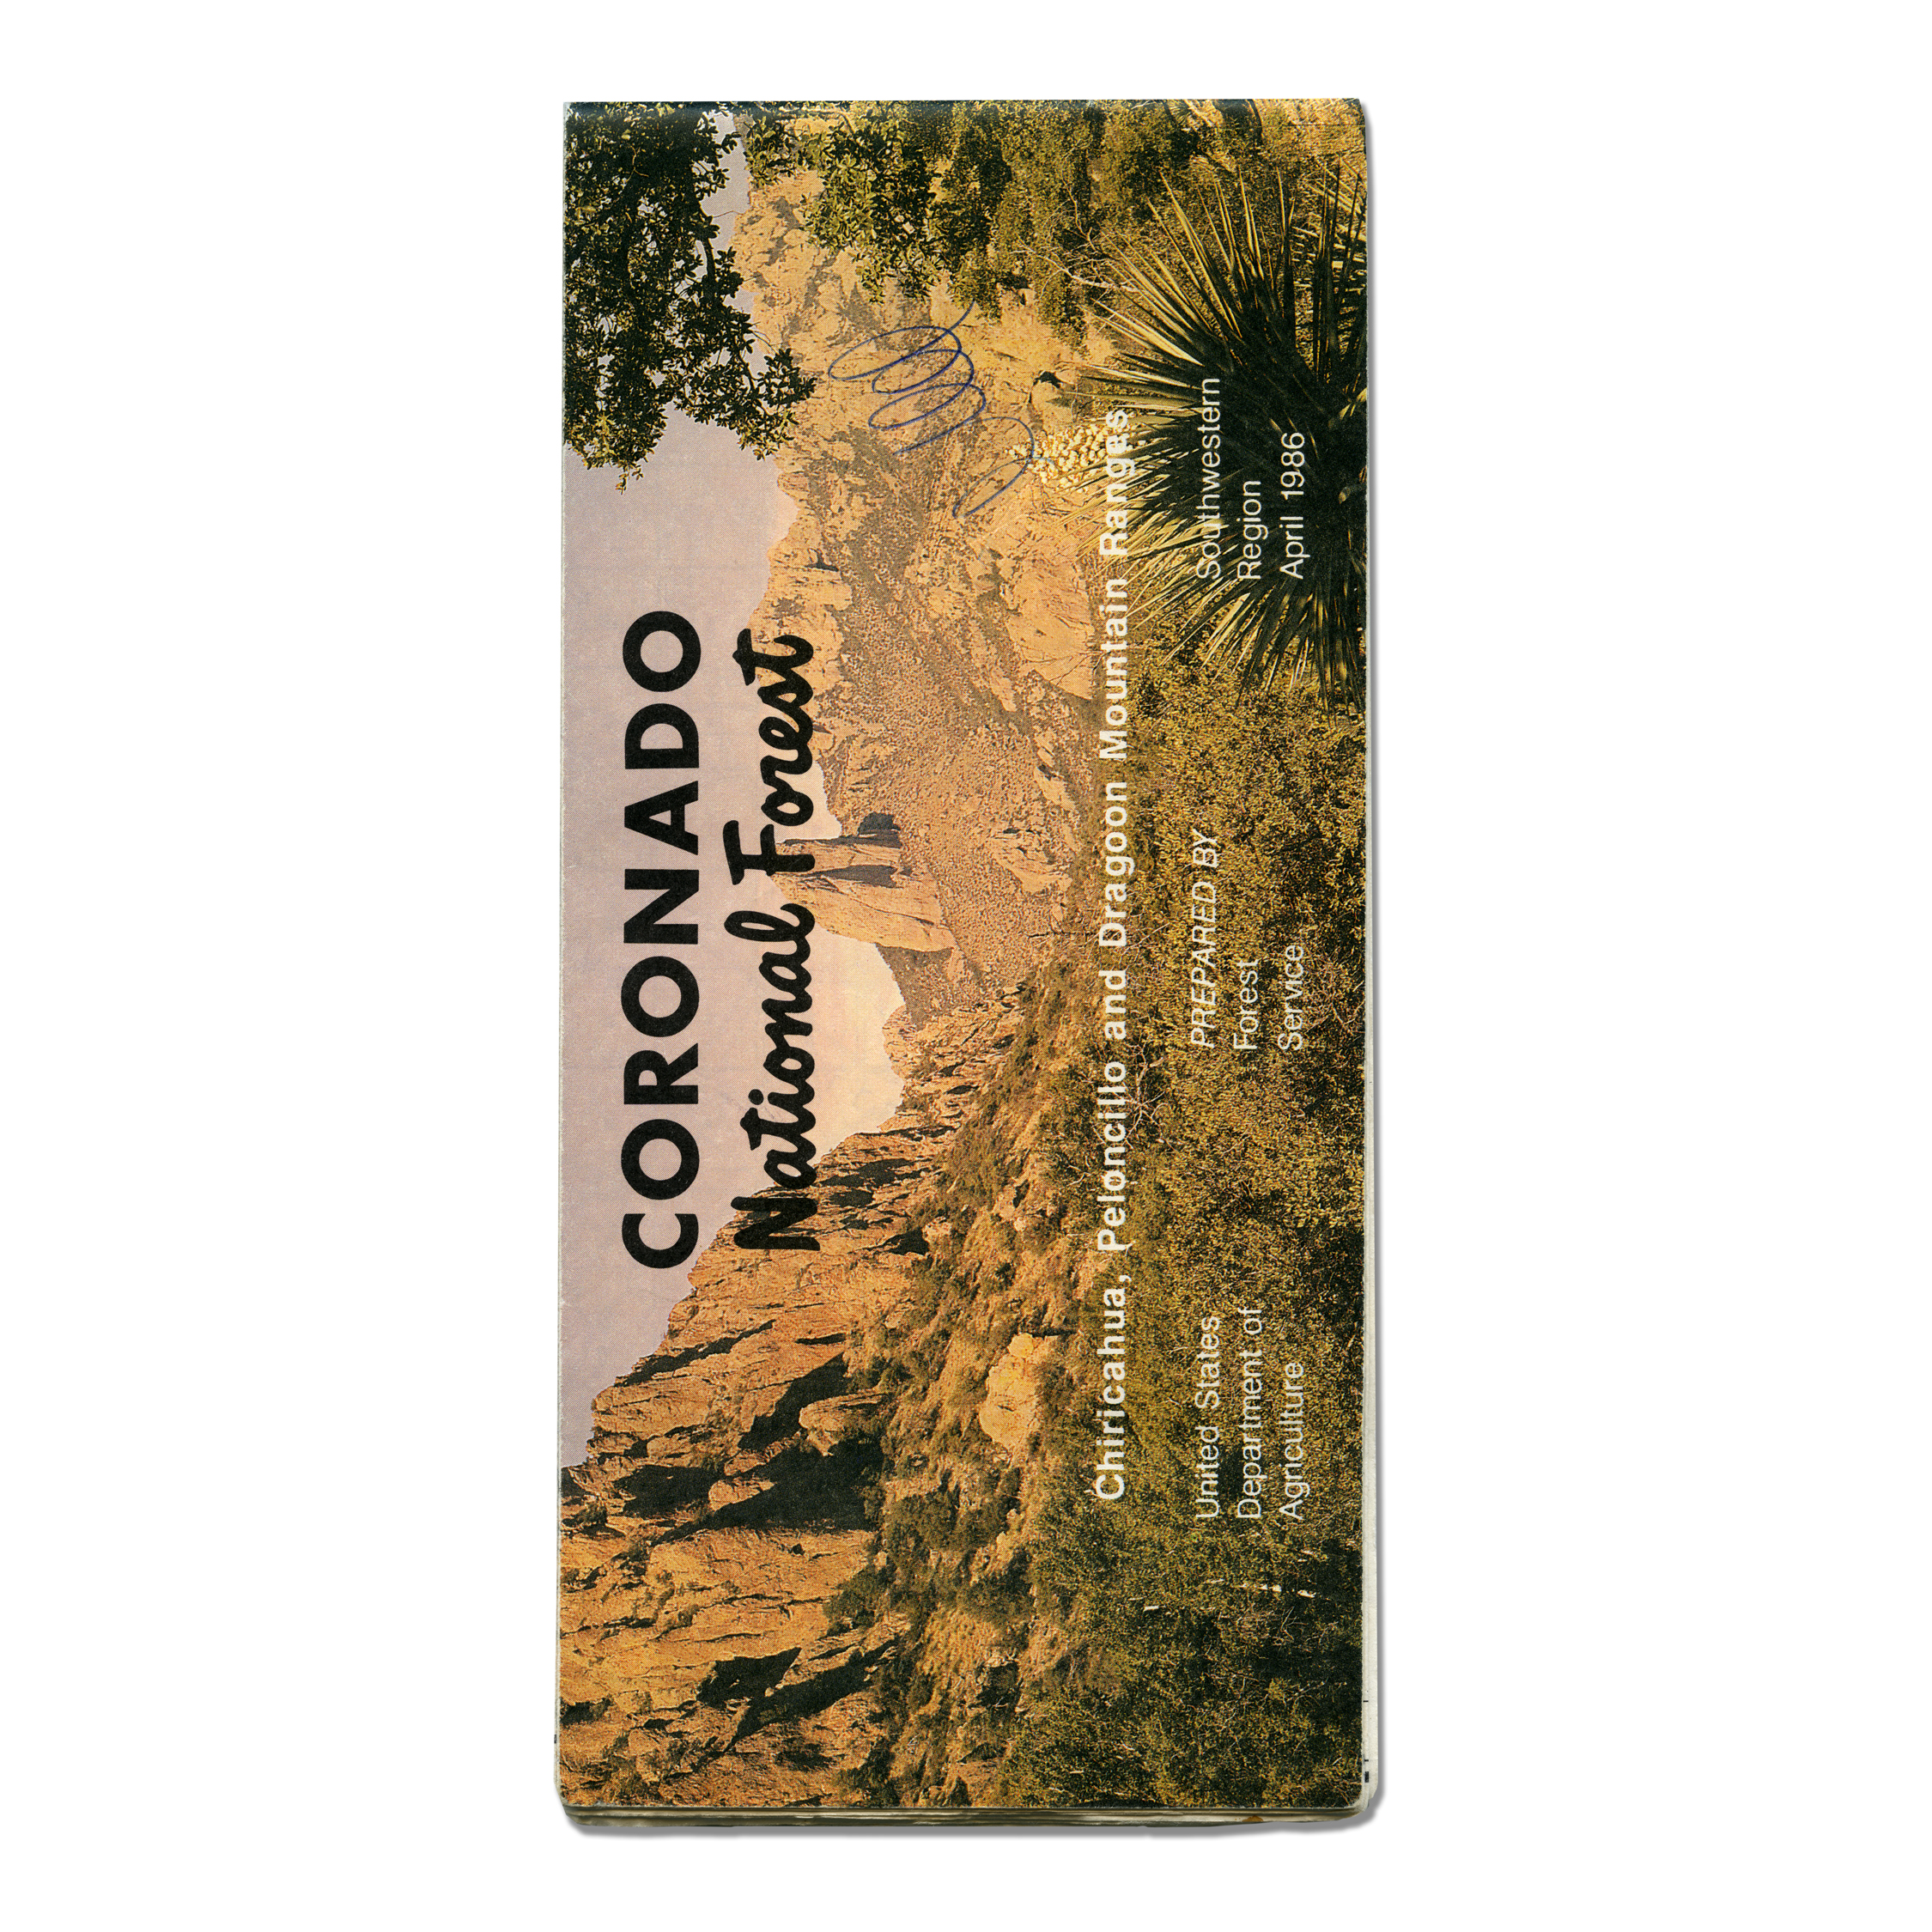 1986_coronado_national_forest_brochure.jpg